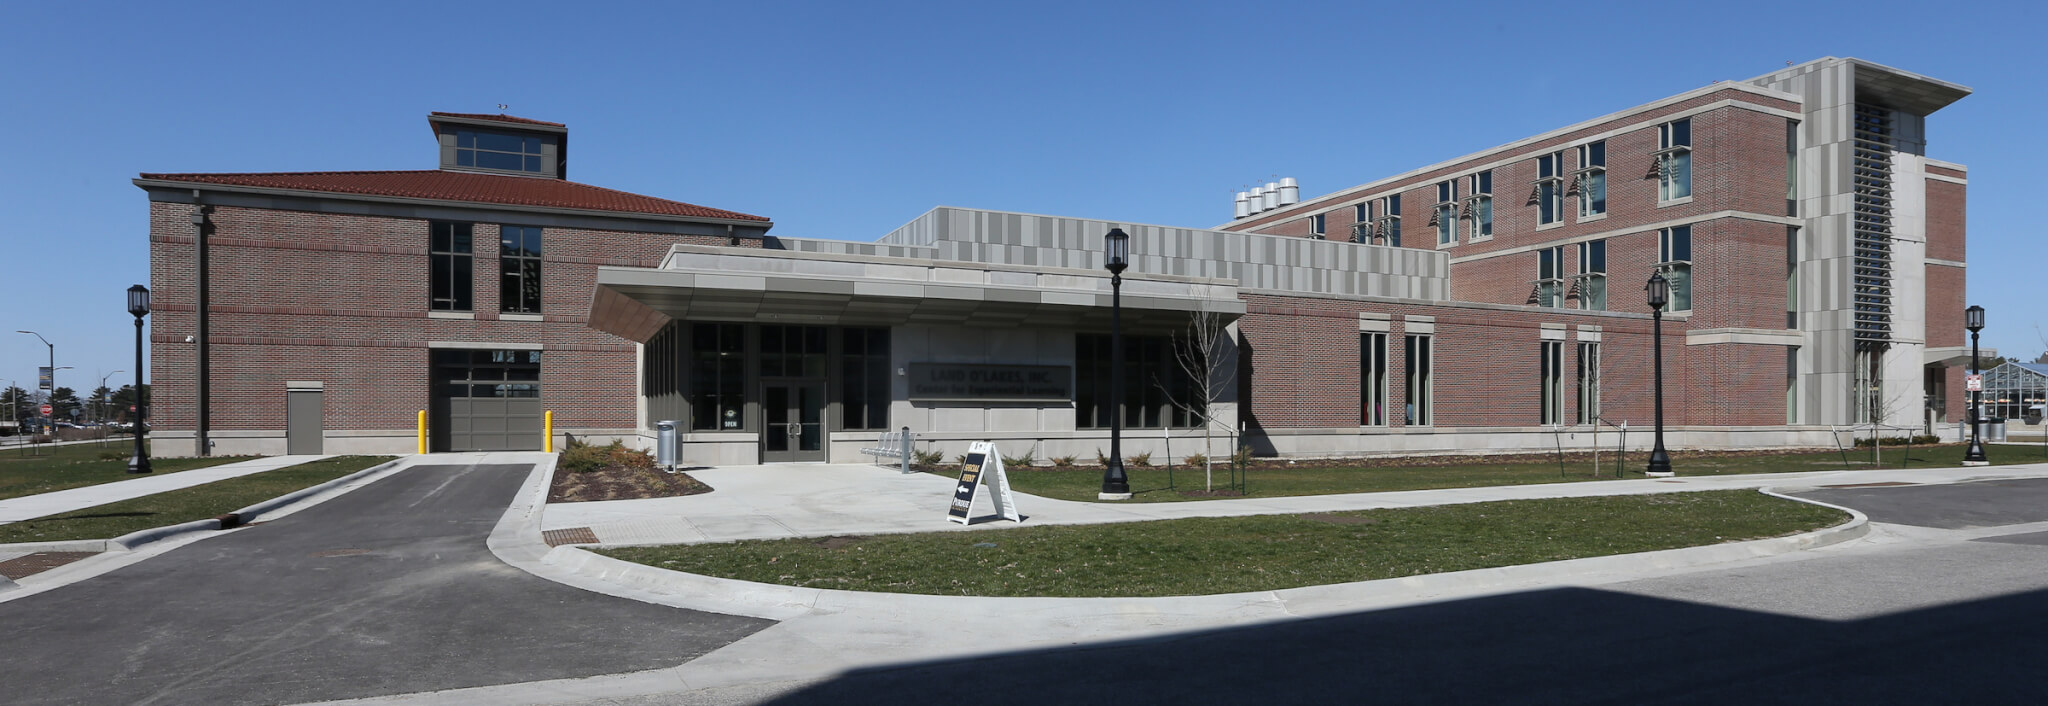 Purdue's Land O' Lakes, Inc. Center for Experiential Learning